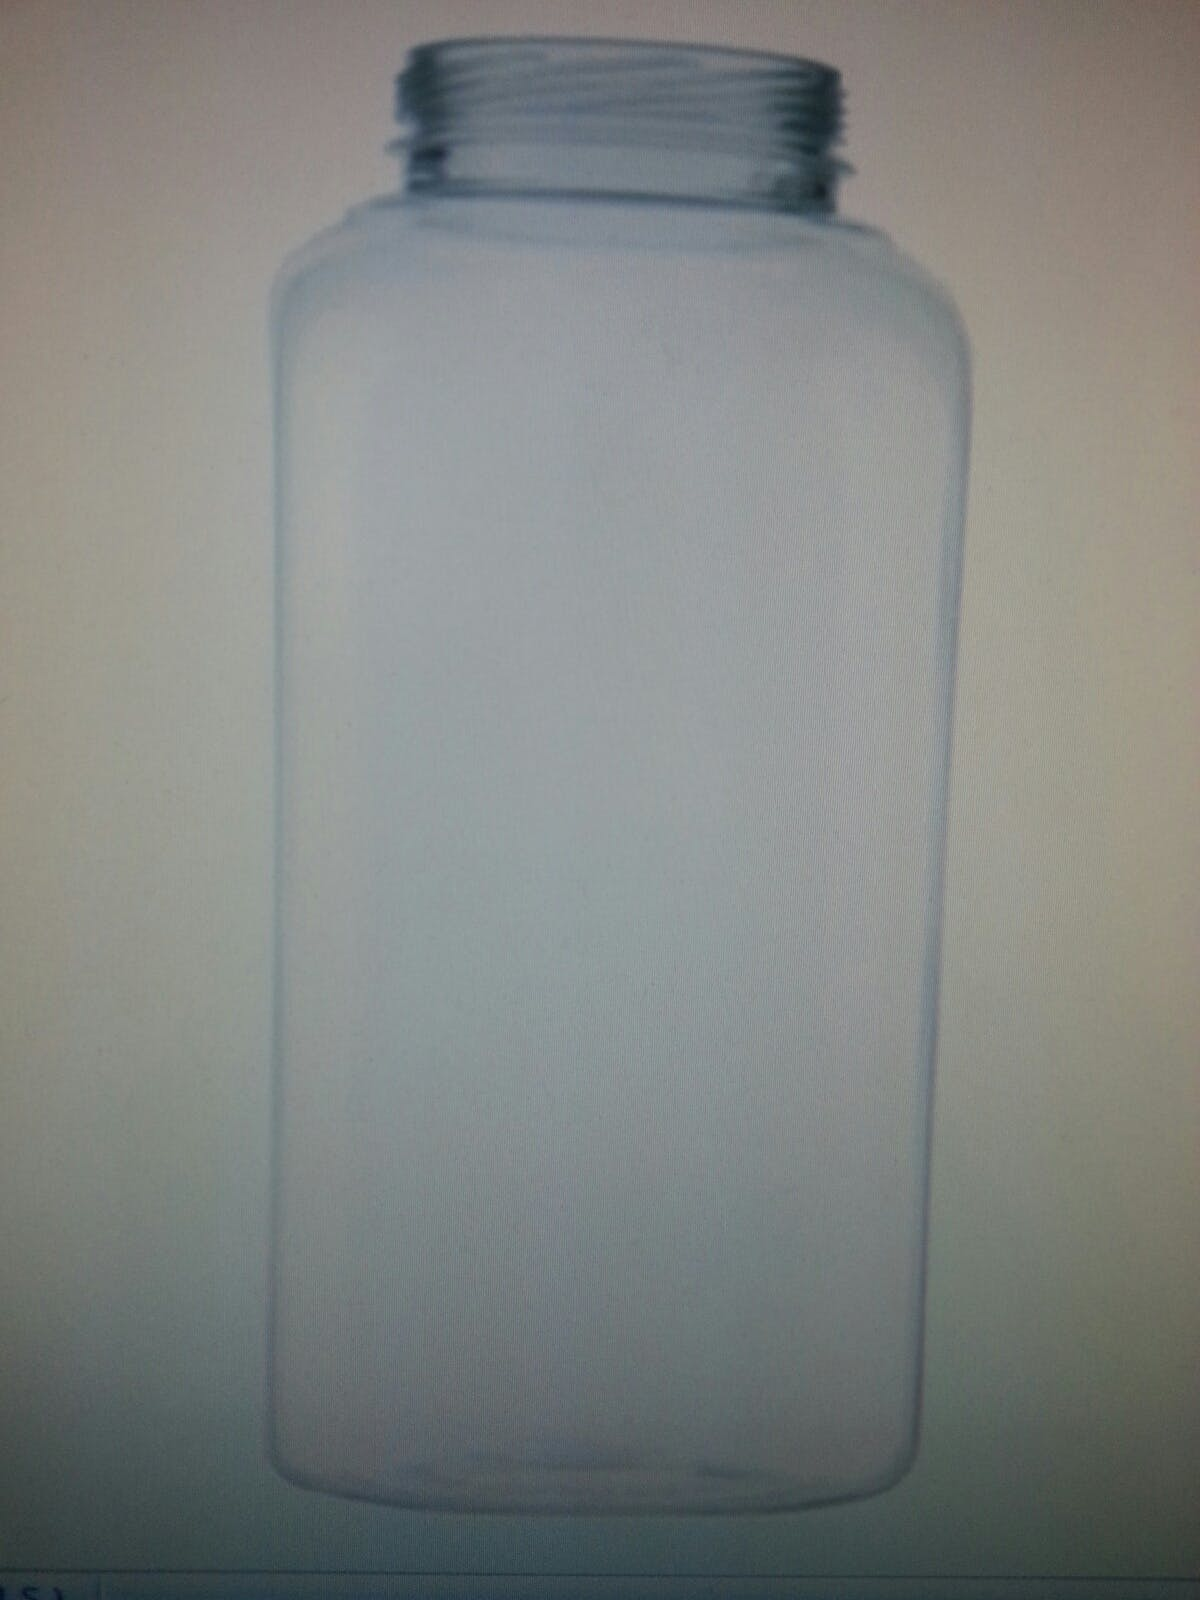 16 oz PET juice bottle Plastic bottle sold by Bottle Solutions